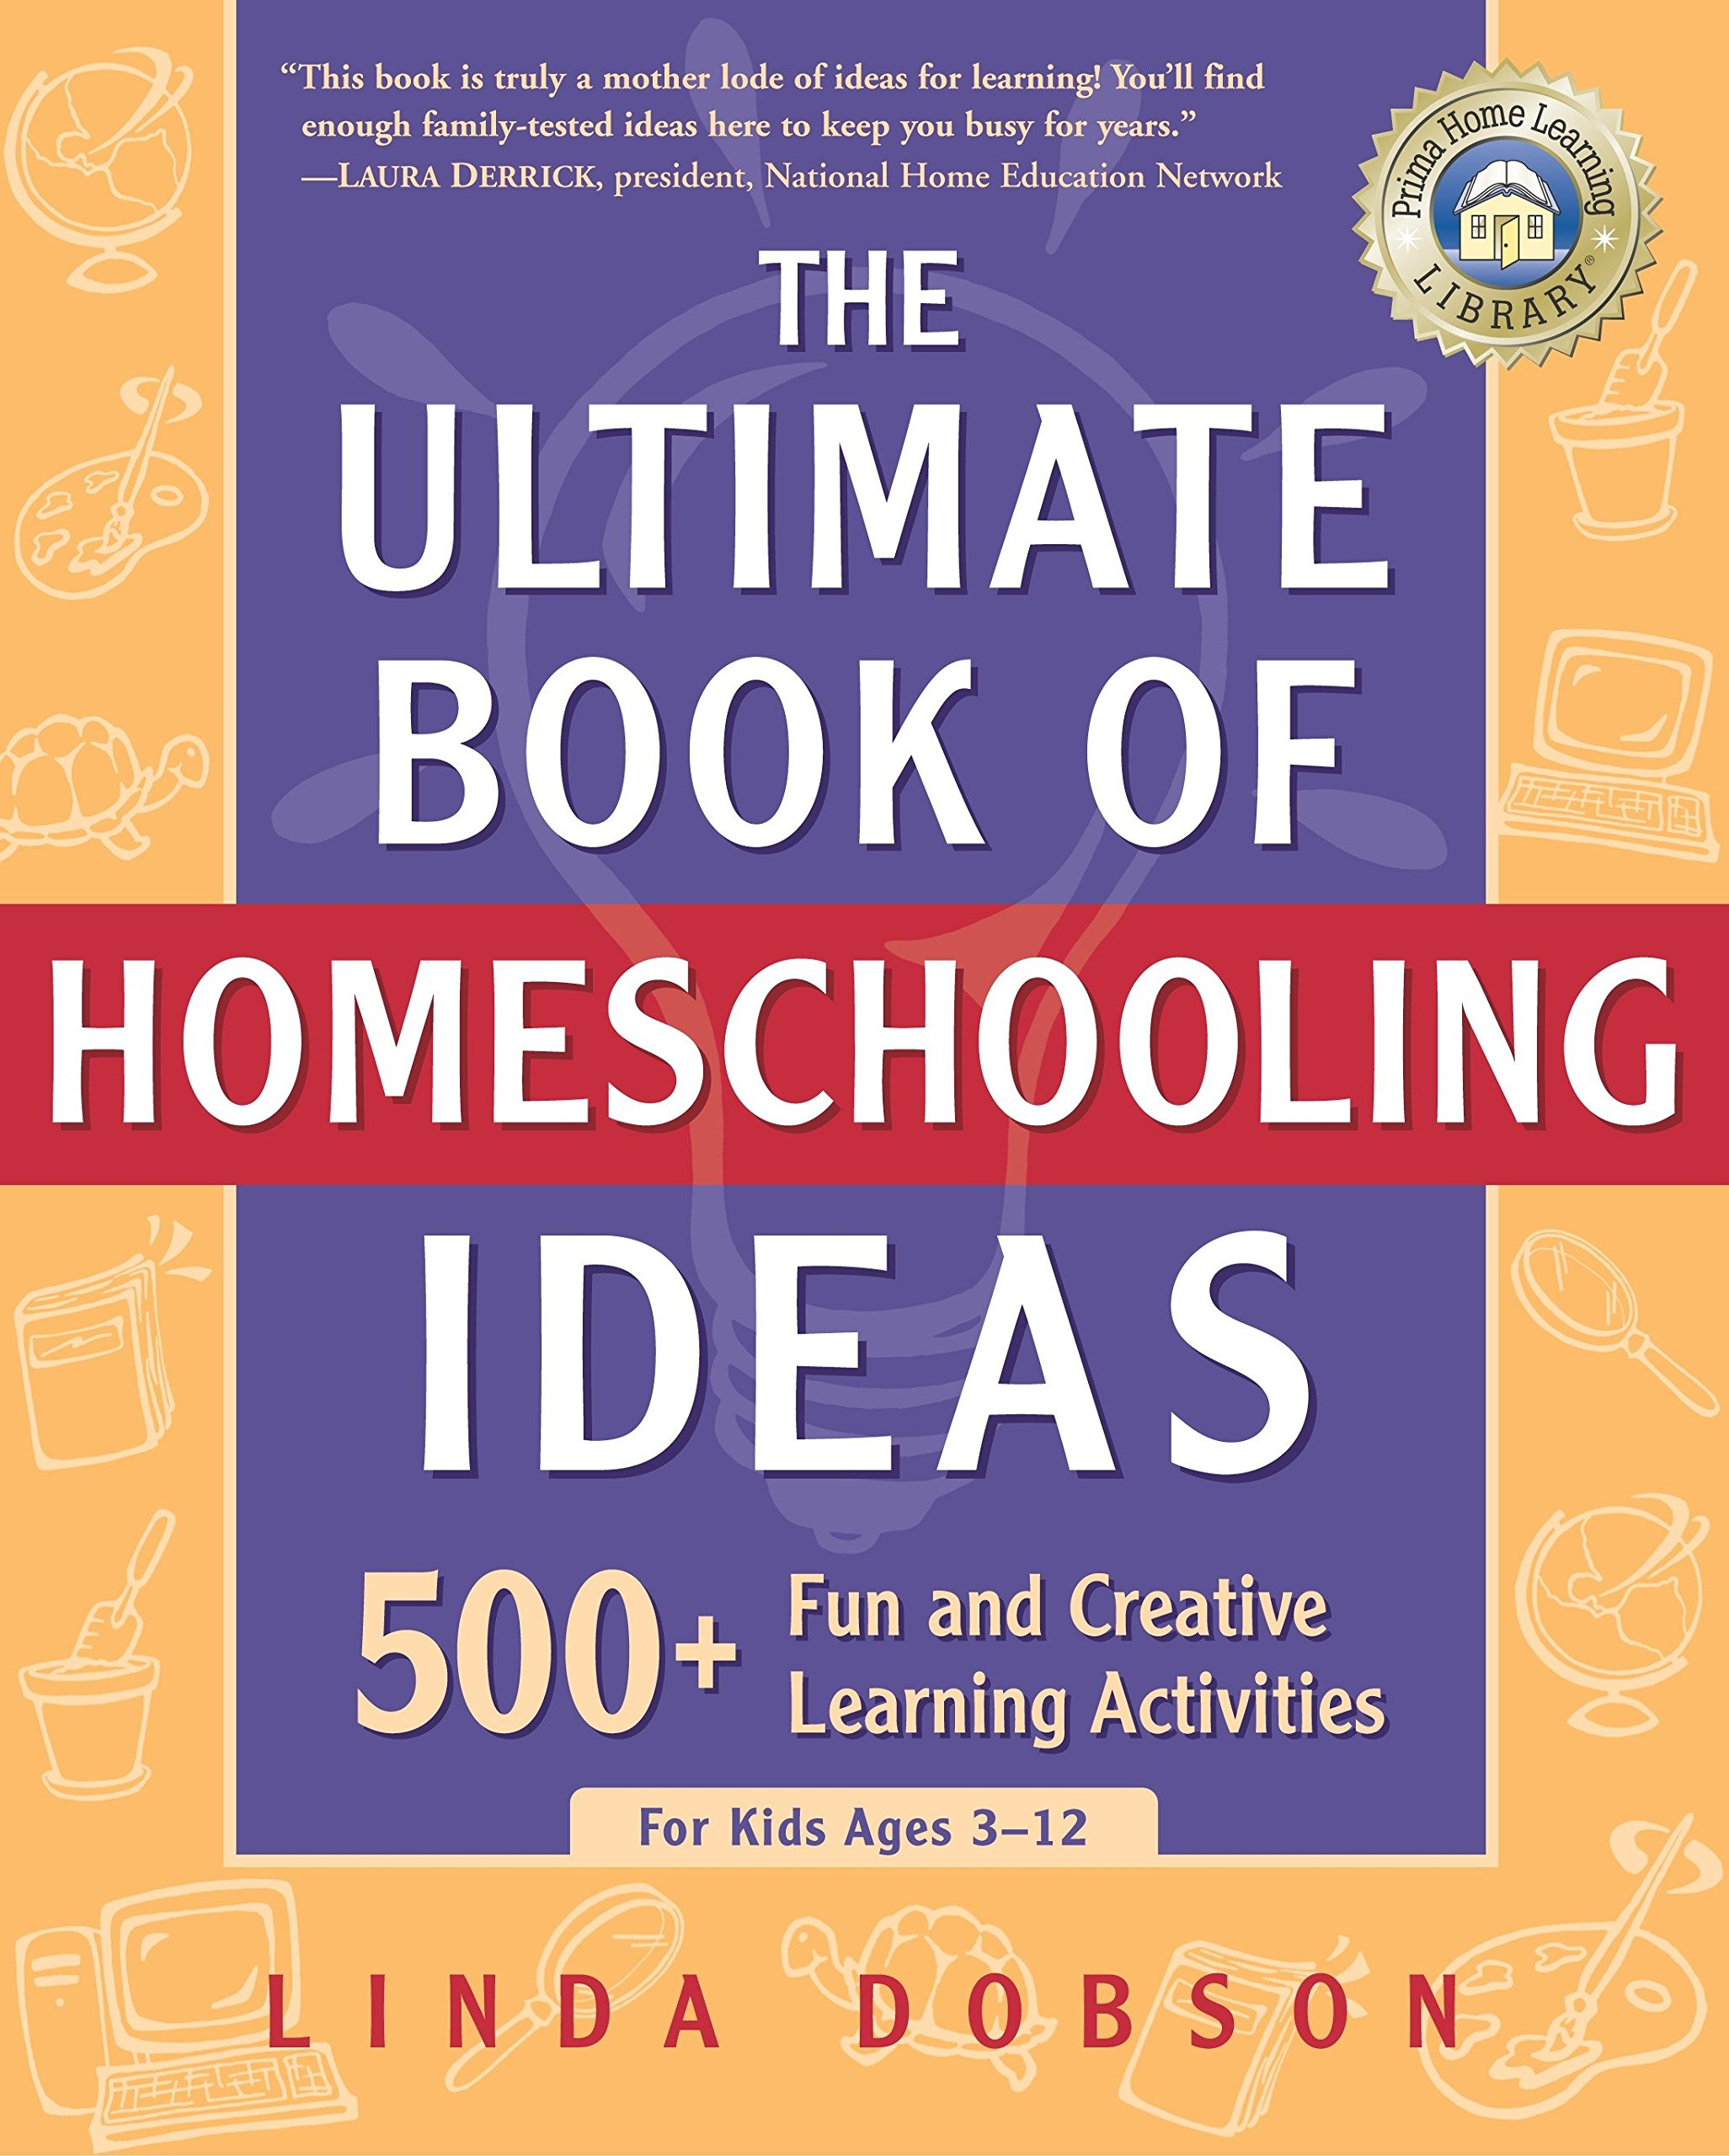 The Ultimate Book of Homeschooling Ideas: 500+ Fun and Creative Learning Activities for Kids Ages 3-12 (Prima Home Learning Library) pdf